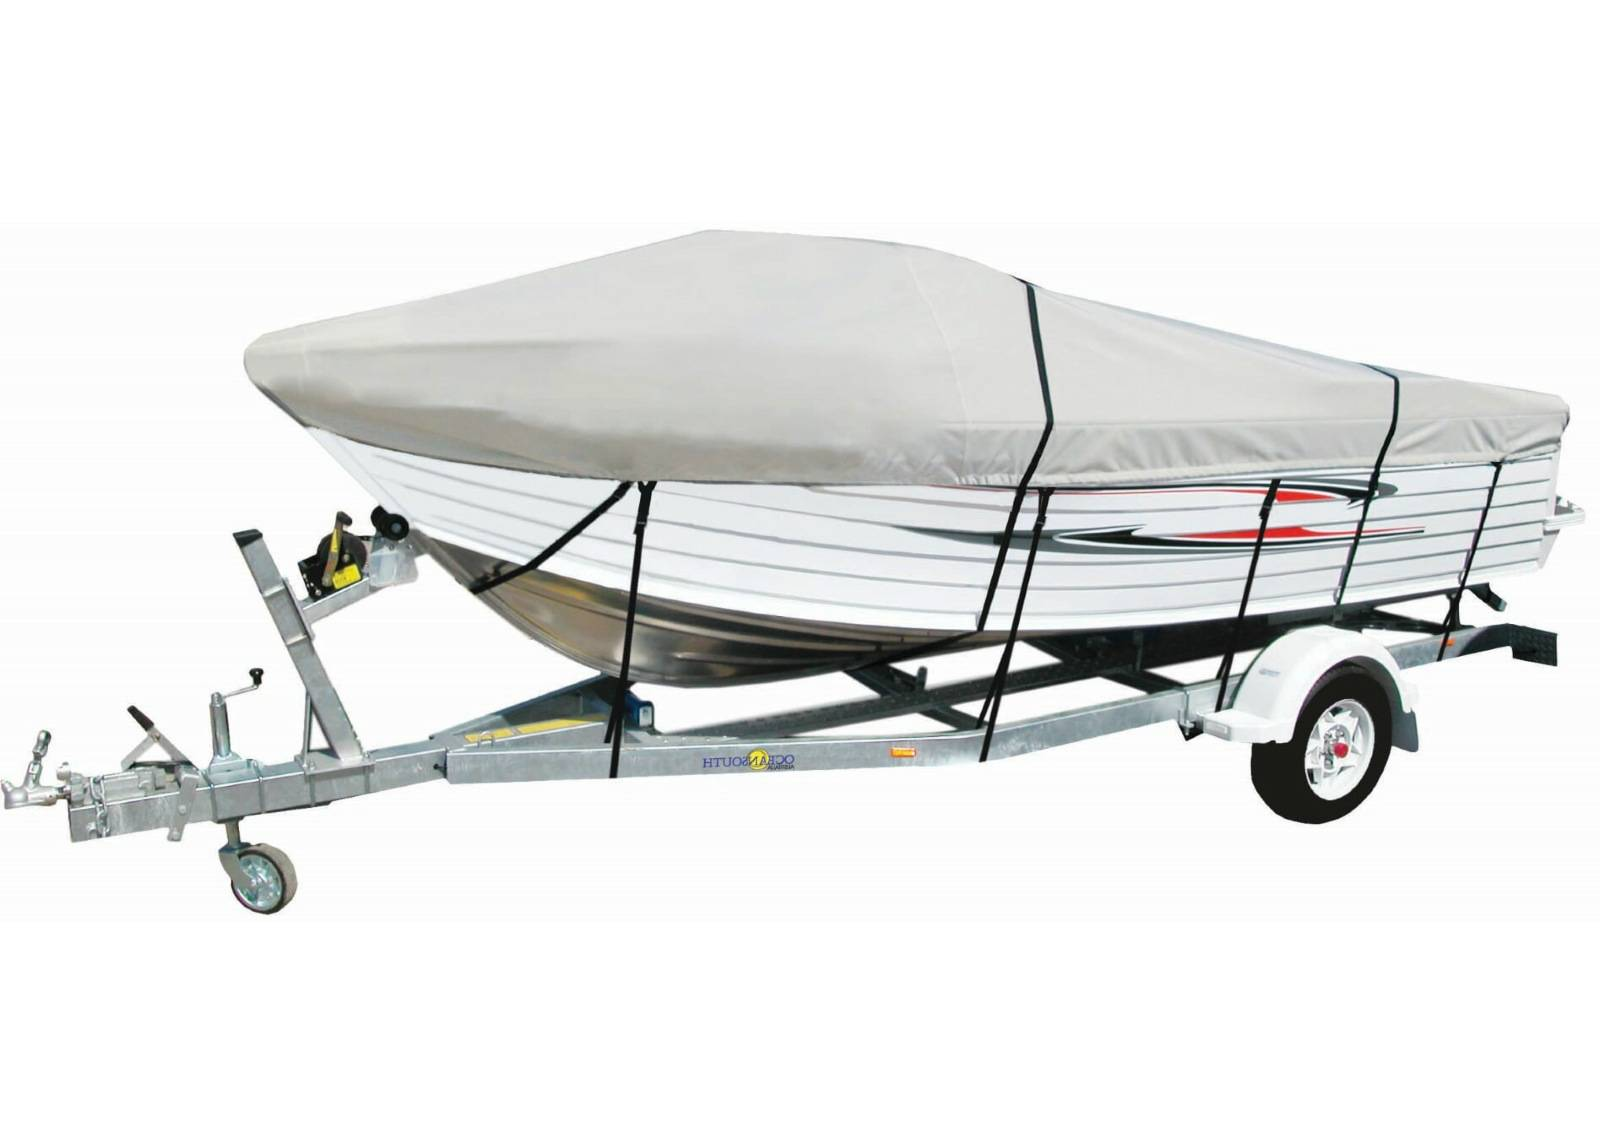 OceanSouth Venepeite Runabout tyyppisille veneille 6.3-6.7 m